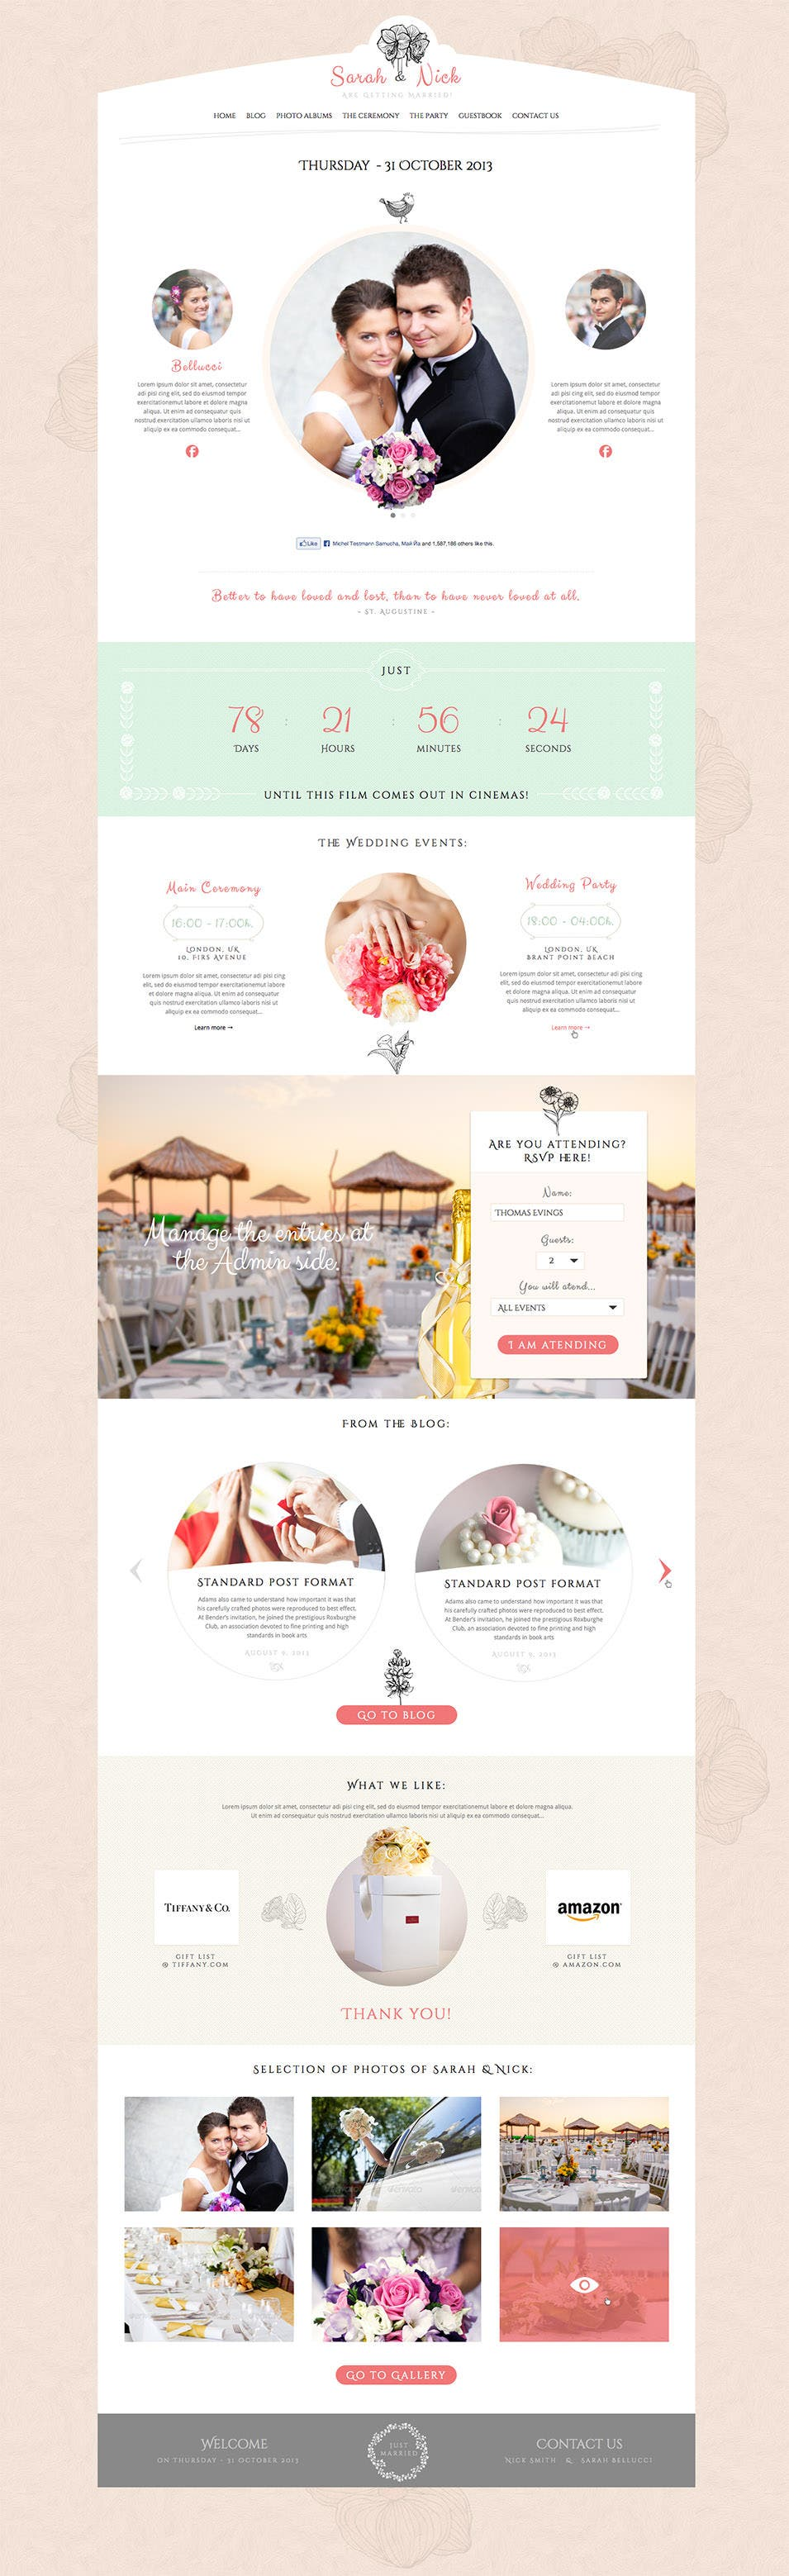 19+ Best Wedding Event Planner Website Templates | Free & Premium ...